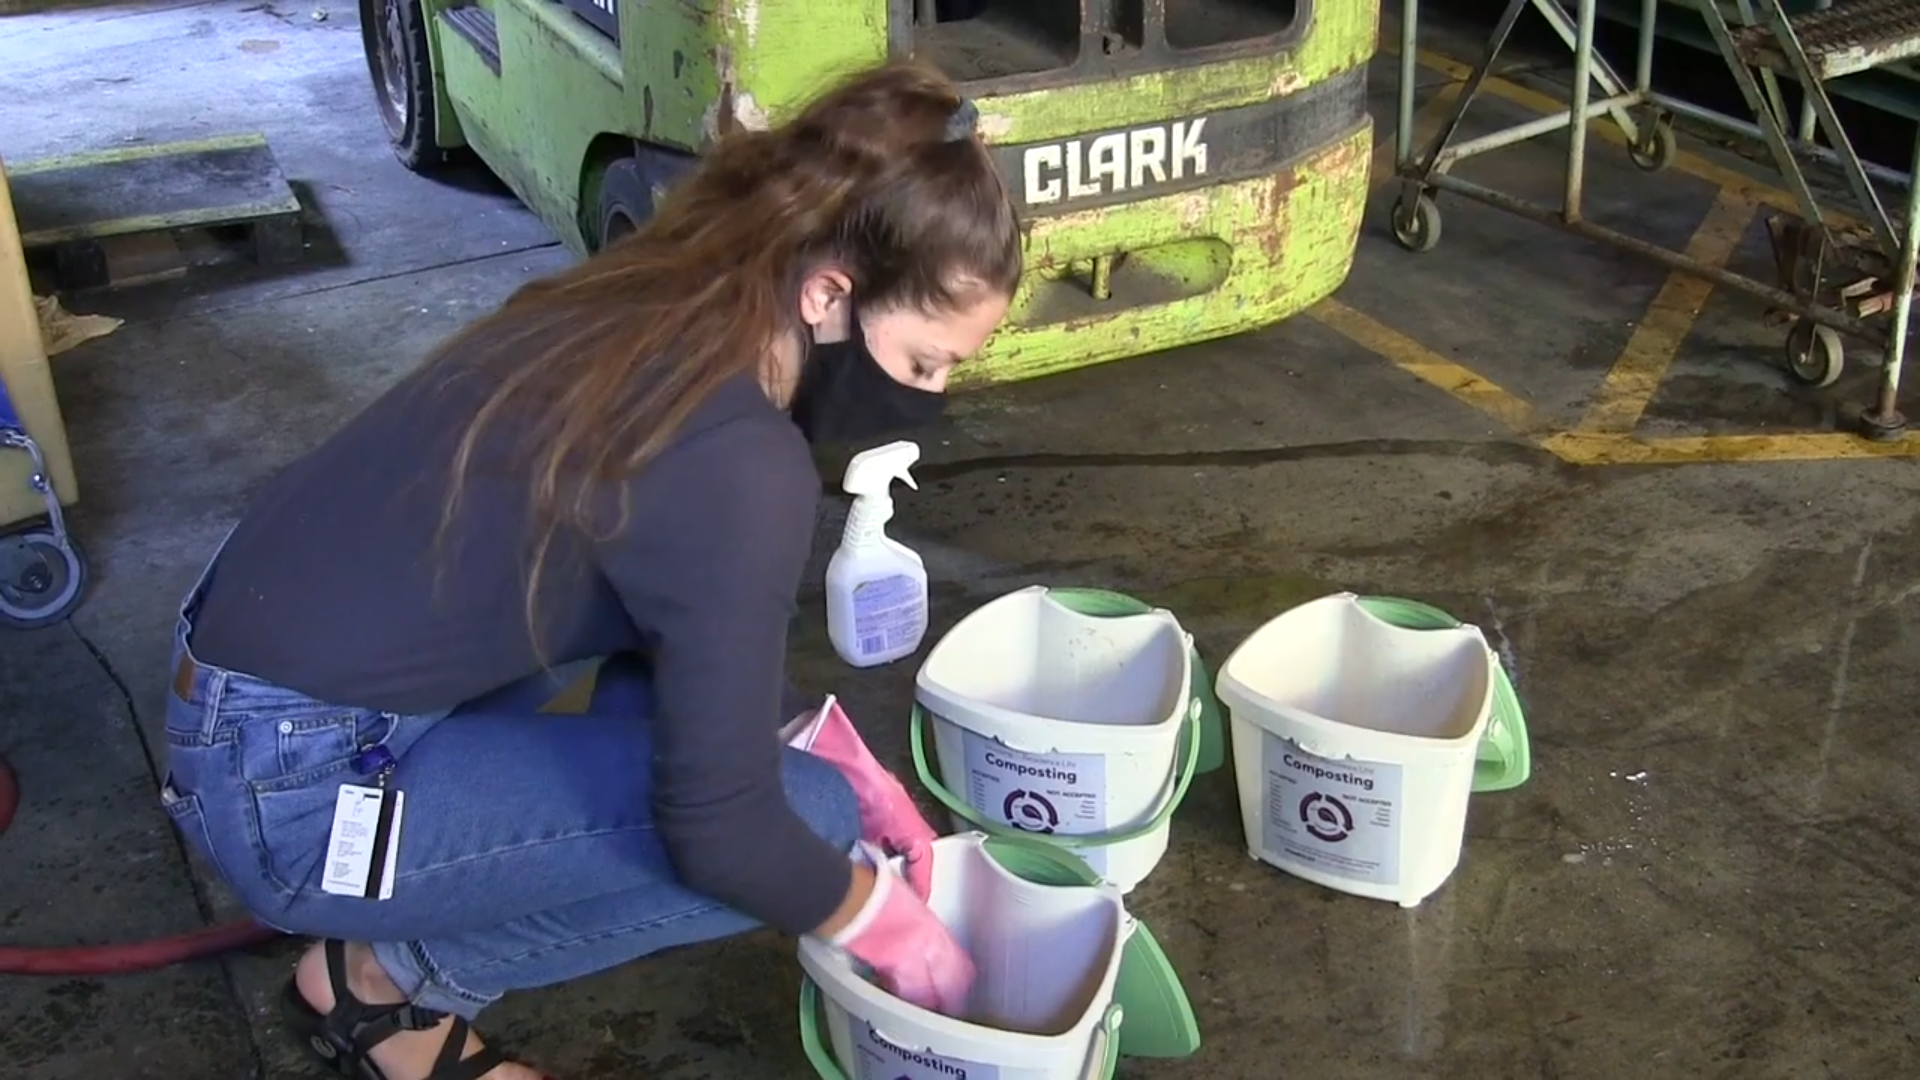 Students at HSU are working to find a solution to the food waste on campus. Kimberly Cossio reports.